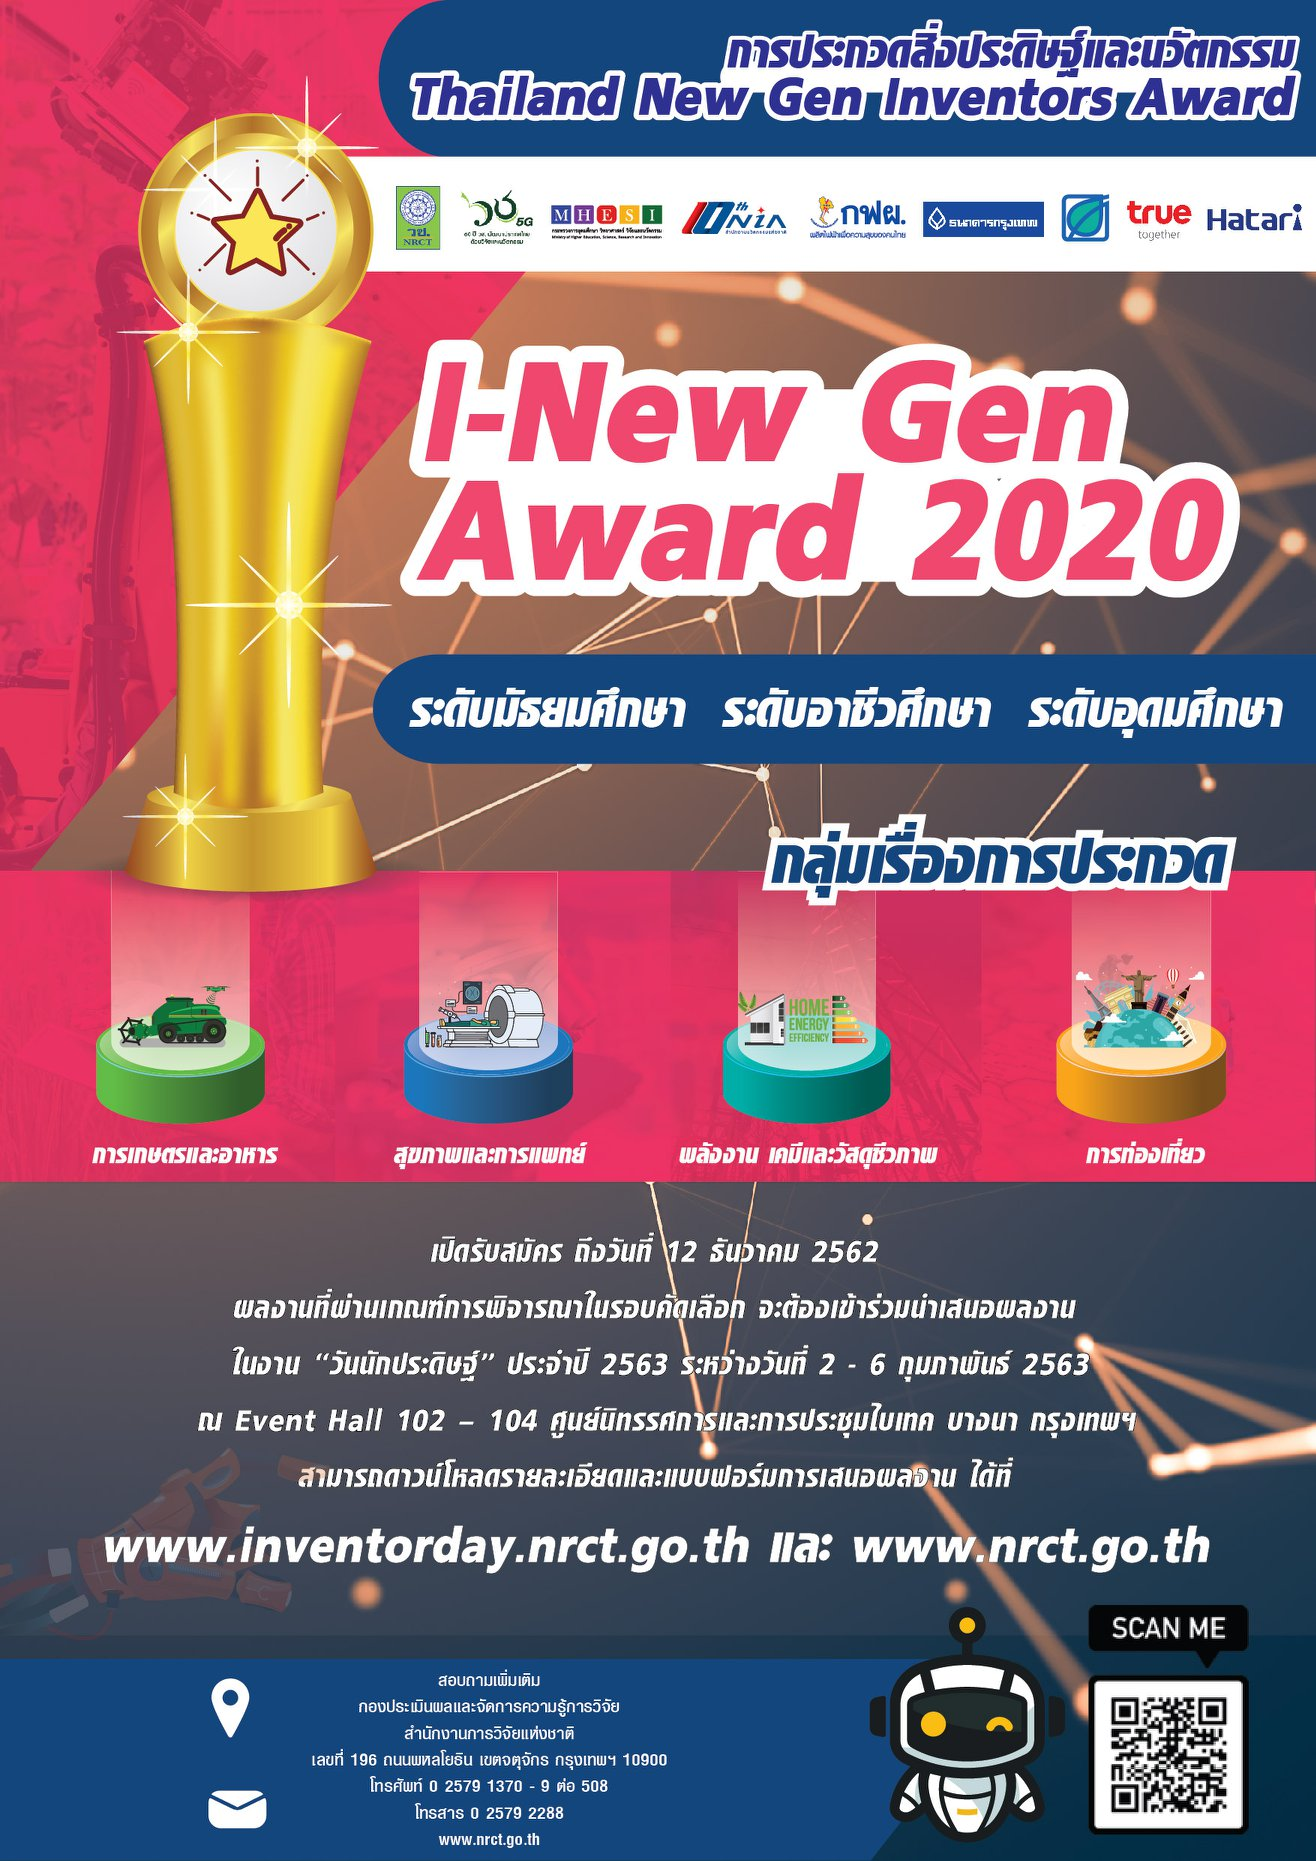 Thailand New Gen Inventors Award 2020 (I-New Gen Award 2020)